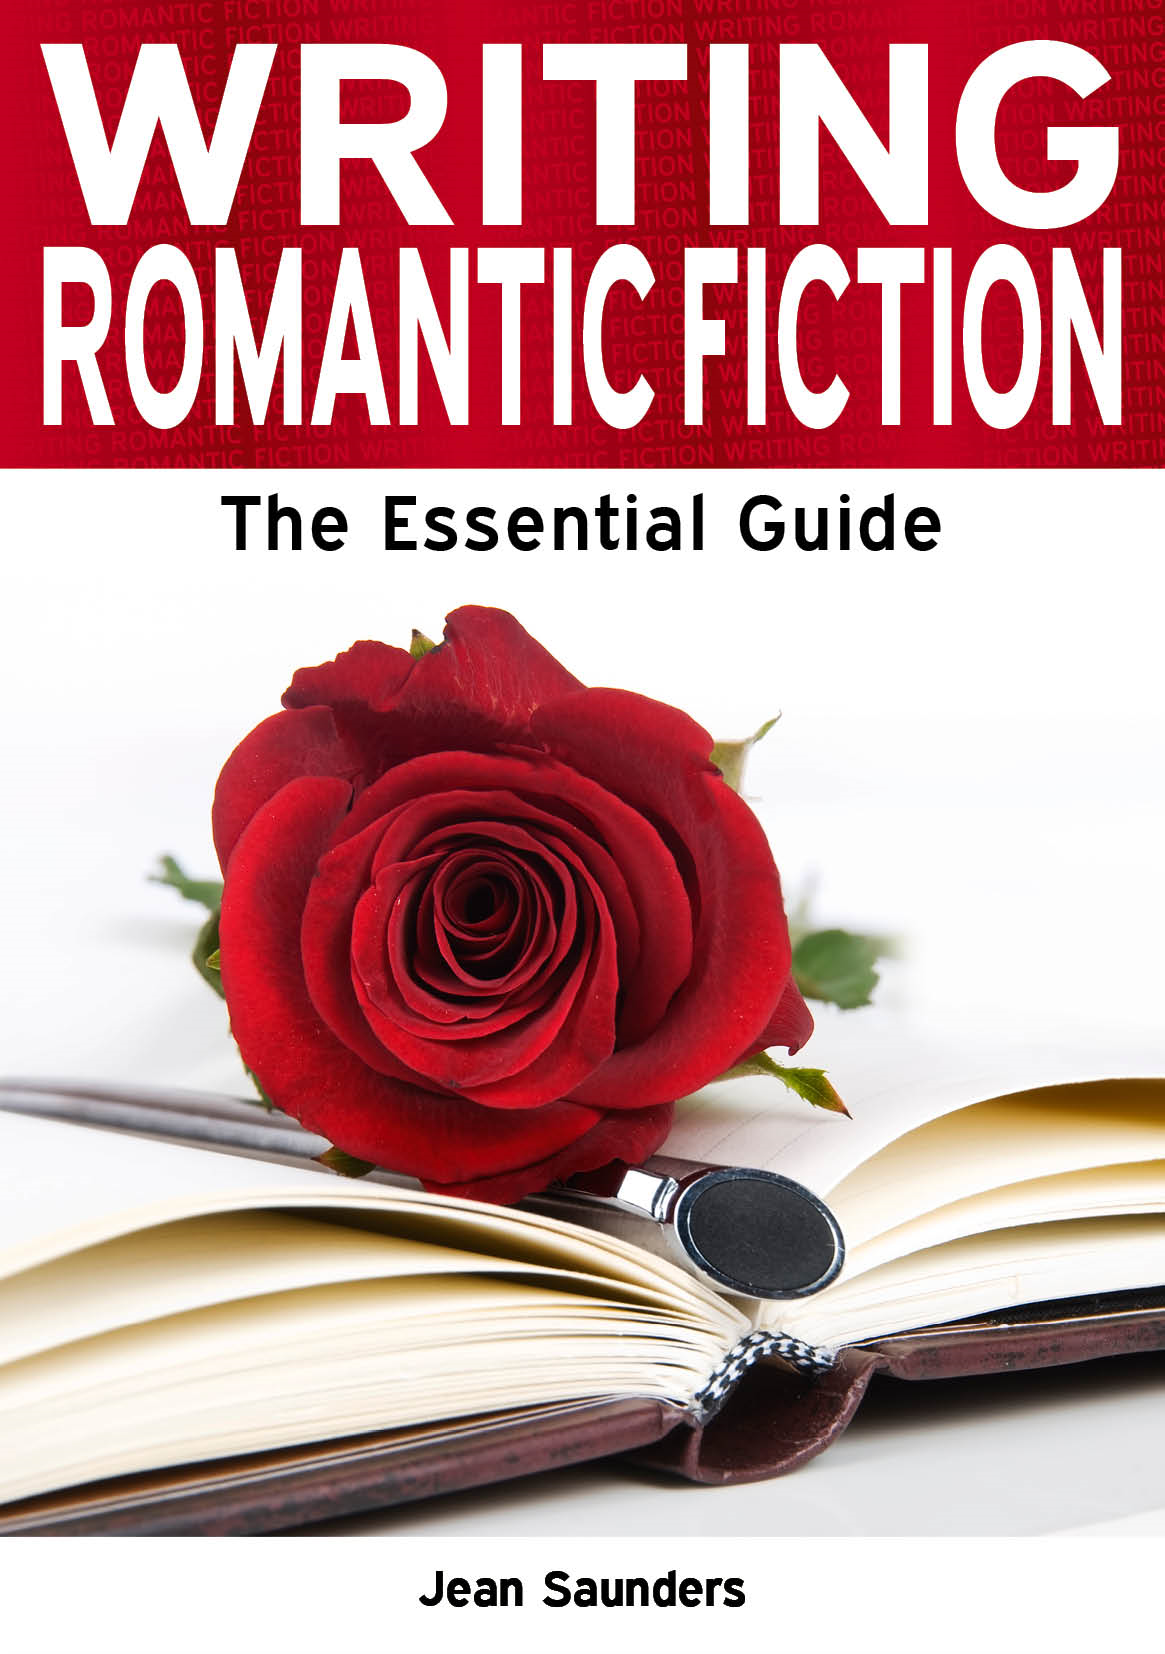 Writing Romantic Fiction: The Essential Guide